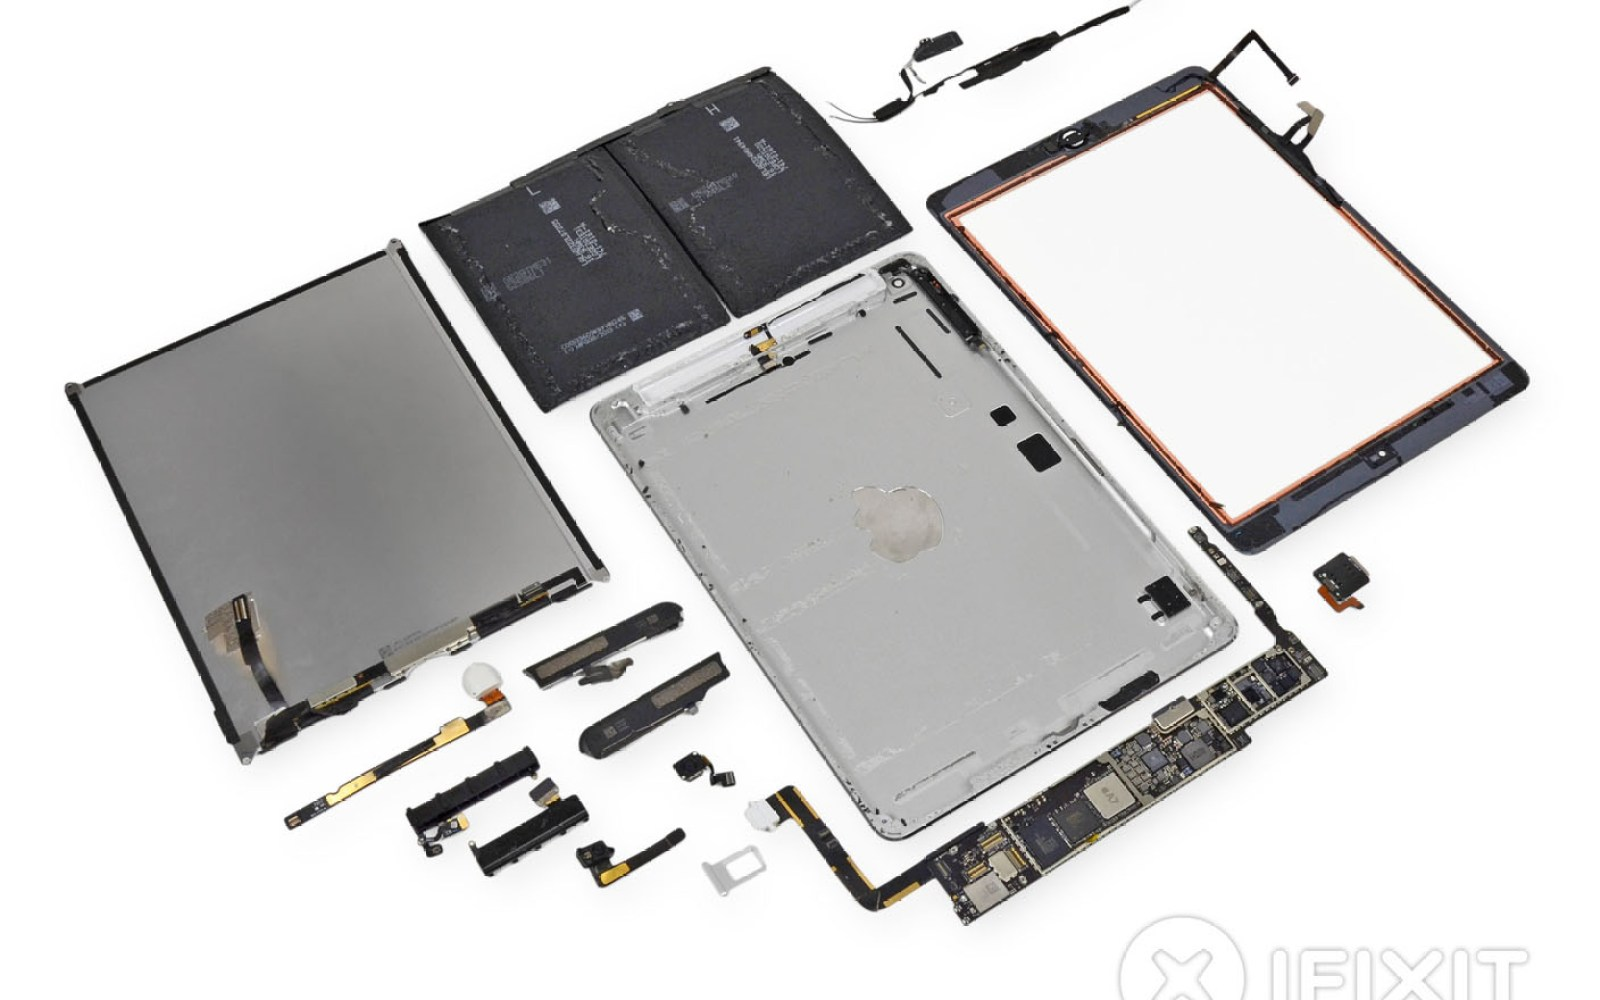 iPad Air teardown: never mind the repairability, feel the tech